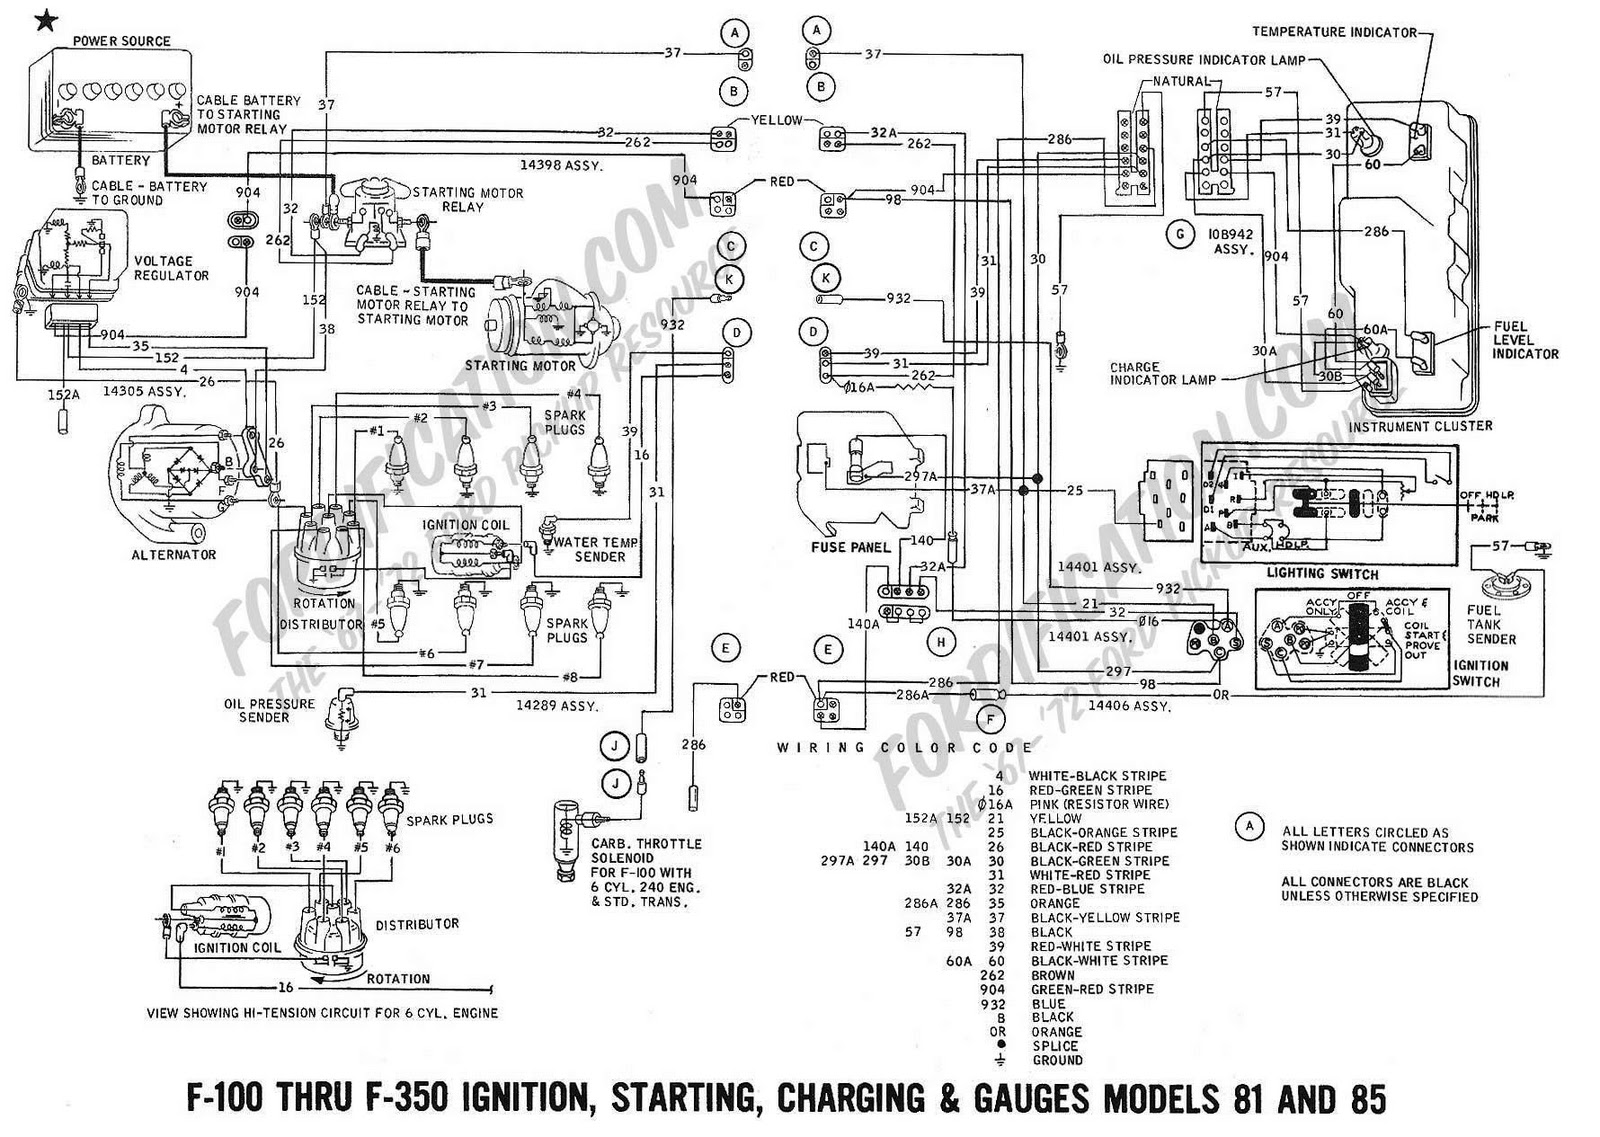 F350 Ignition Wiring Diagram Fuse Box 99 Ford F 150 V6 Wire All Diagramf350 Schematic Diagrams Online